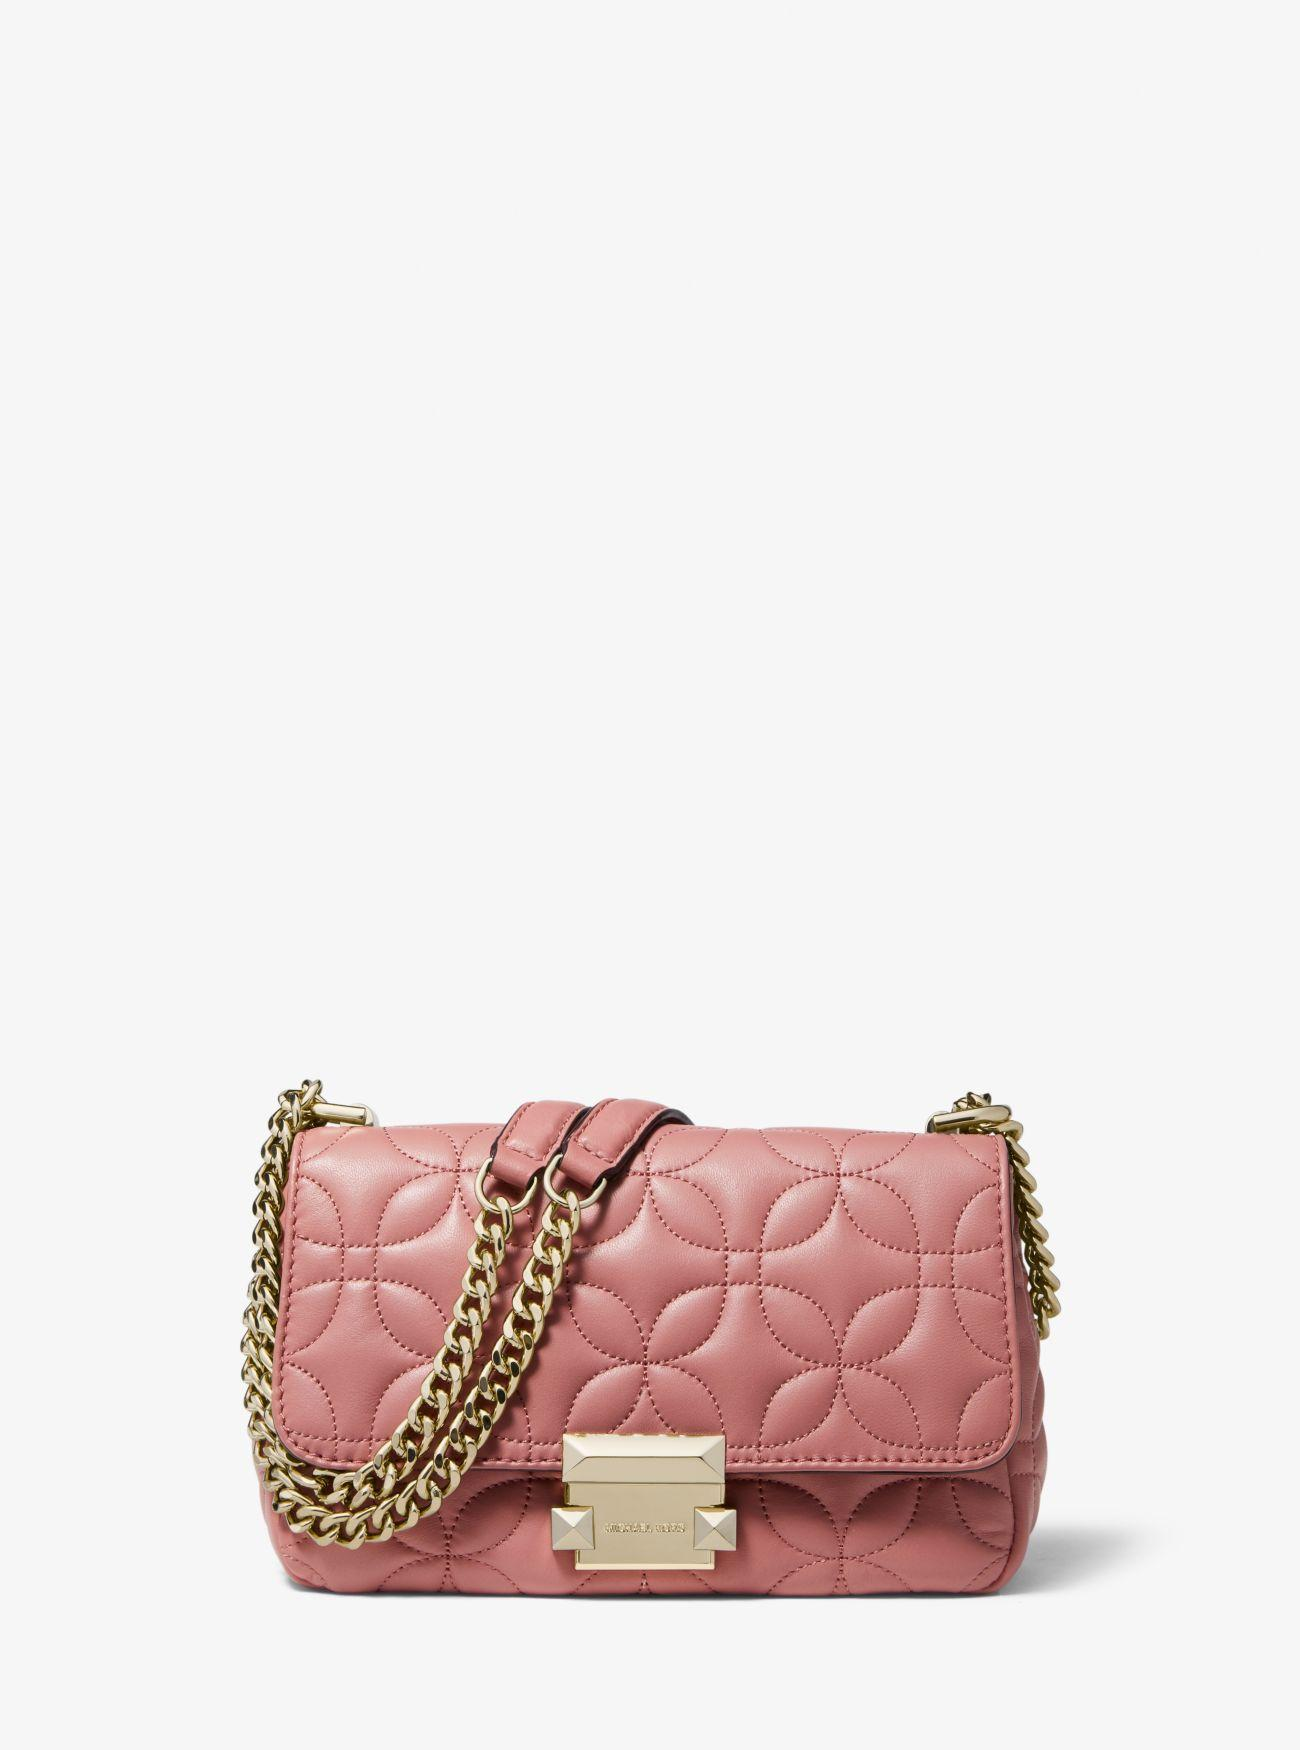 b0b5ece7c94 MICHAEL Michael Kors. Women s Pink Sloan Small Floral Quilted Leather Shoulder  Bag